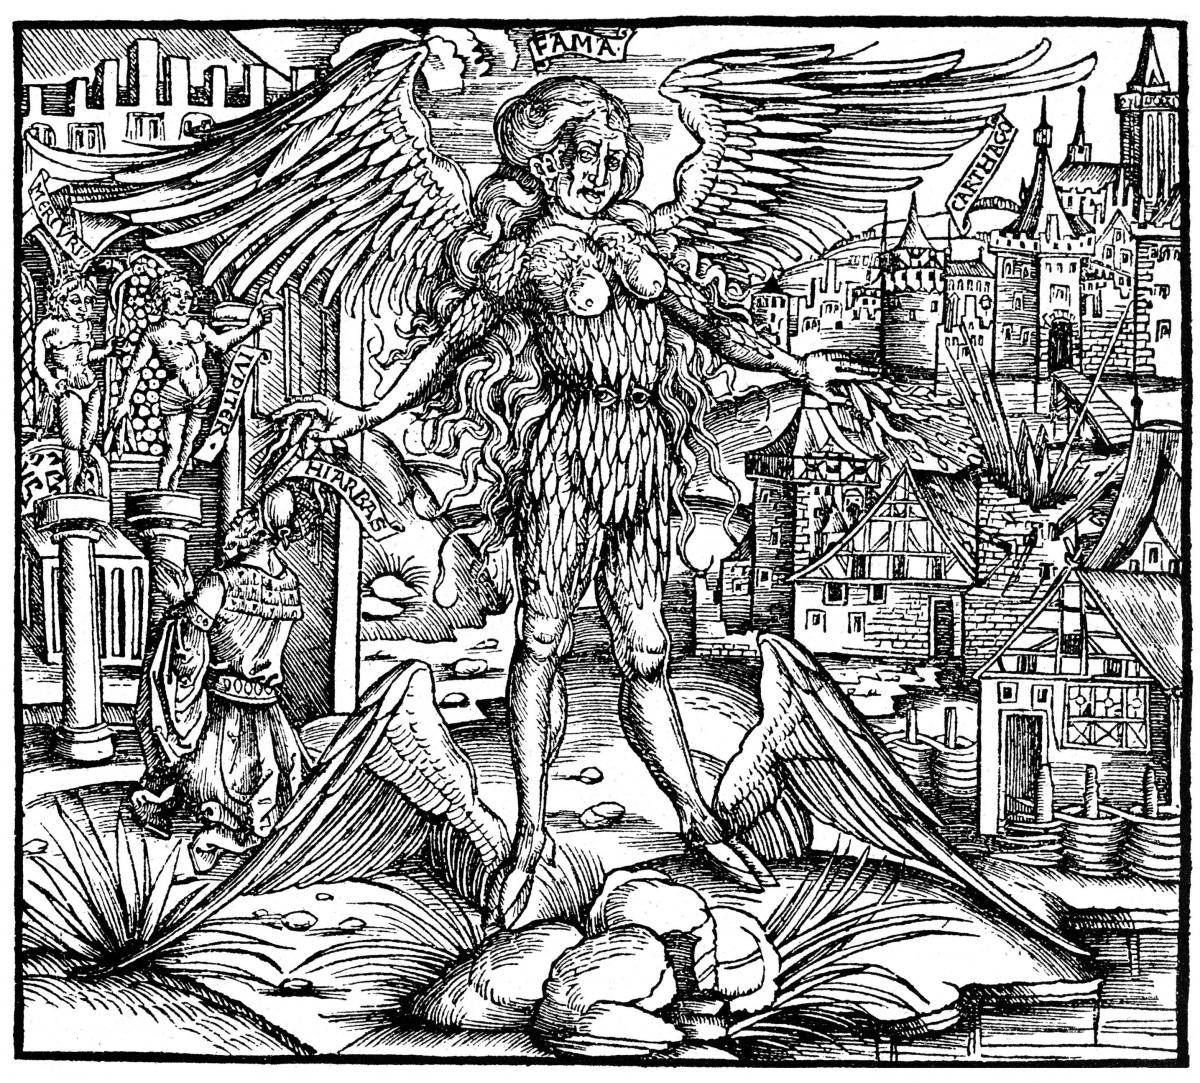 Illustration of Rumor, or Fama, a winged female monster who appears in the Aeneid